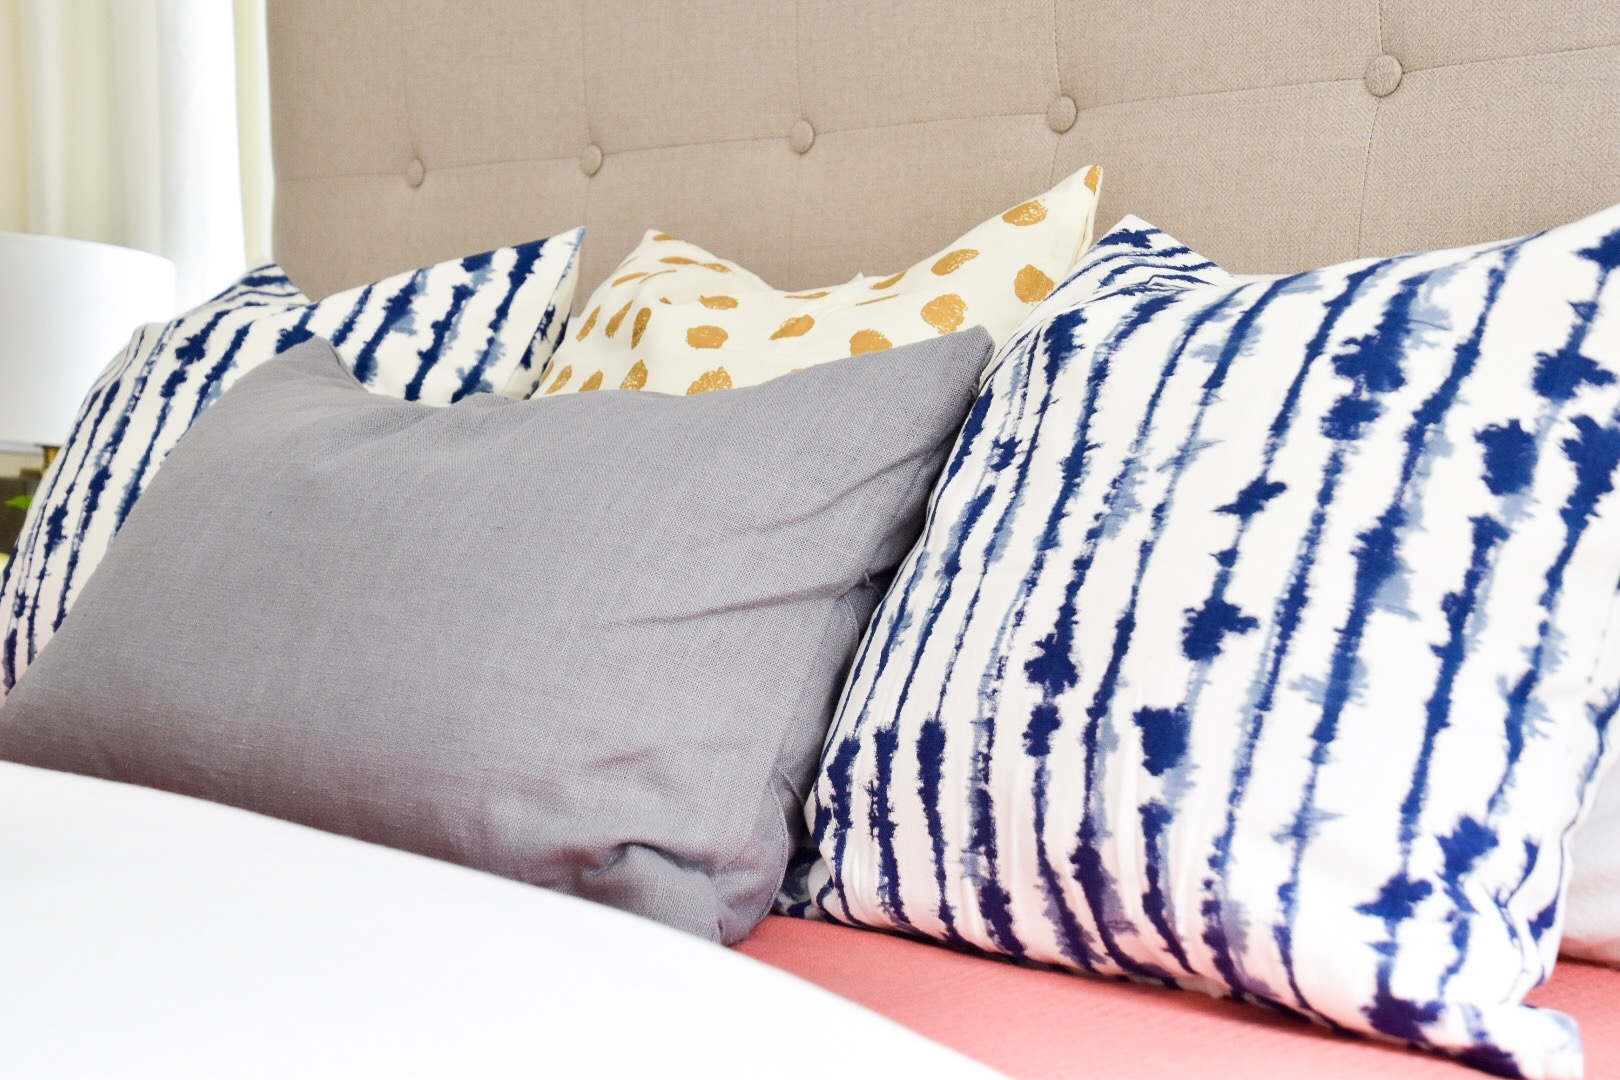 Bedding and accent pillows styled for Habitat for Humanity house